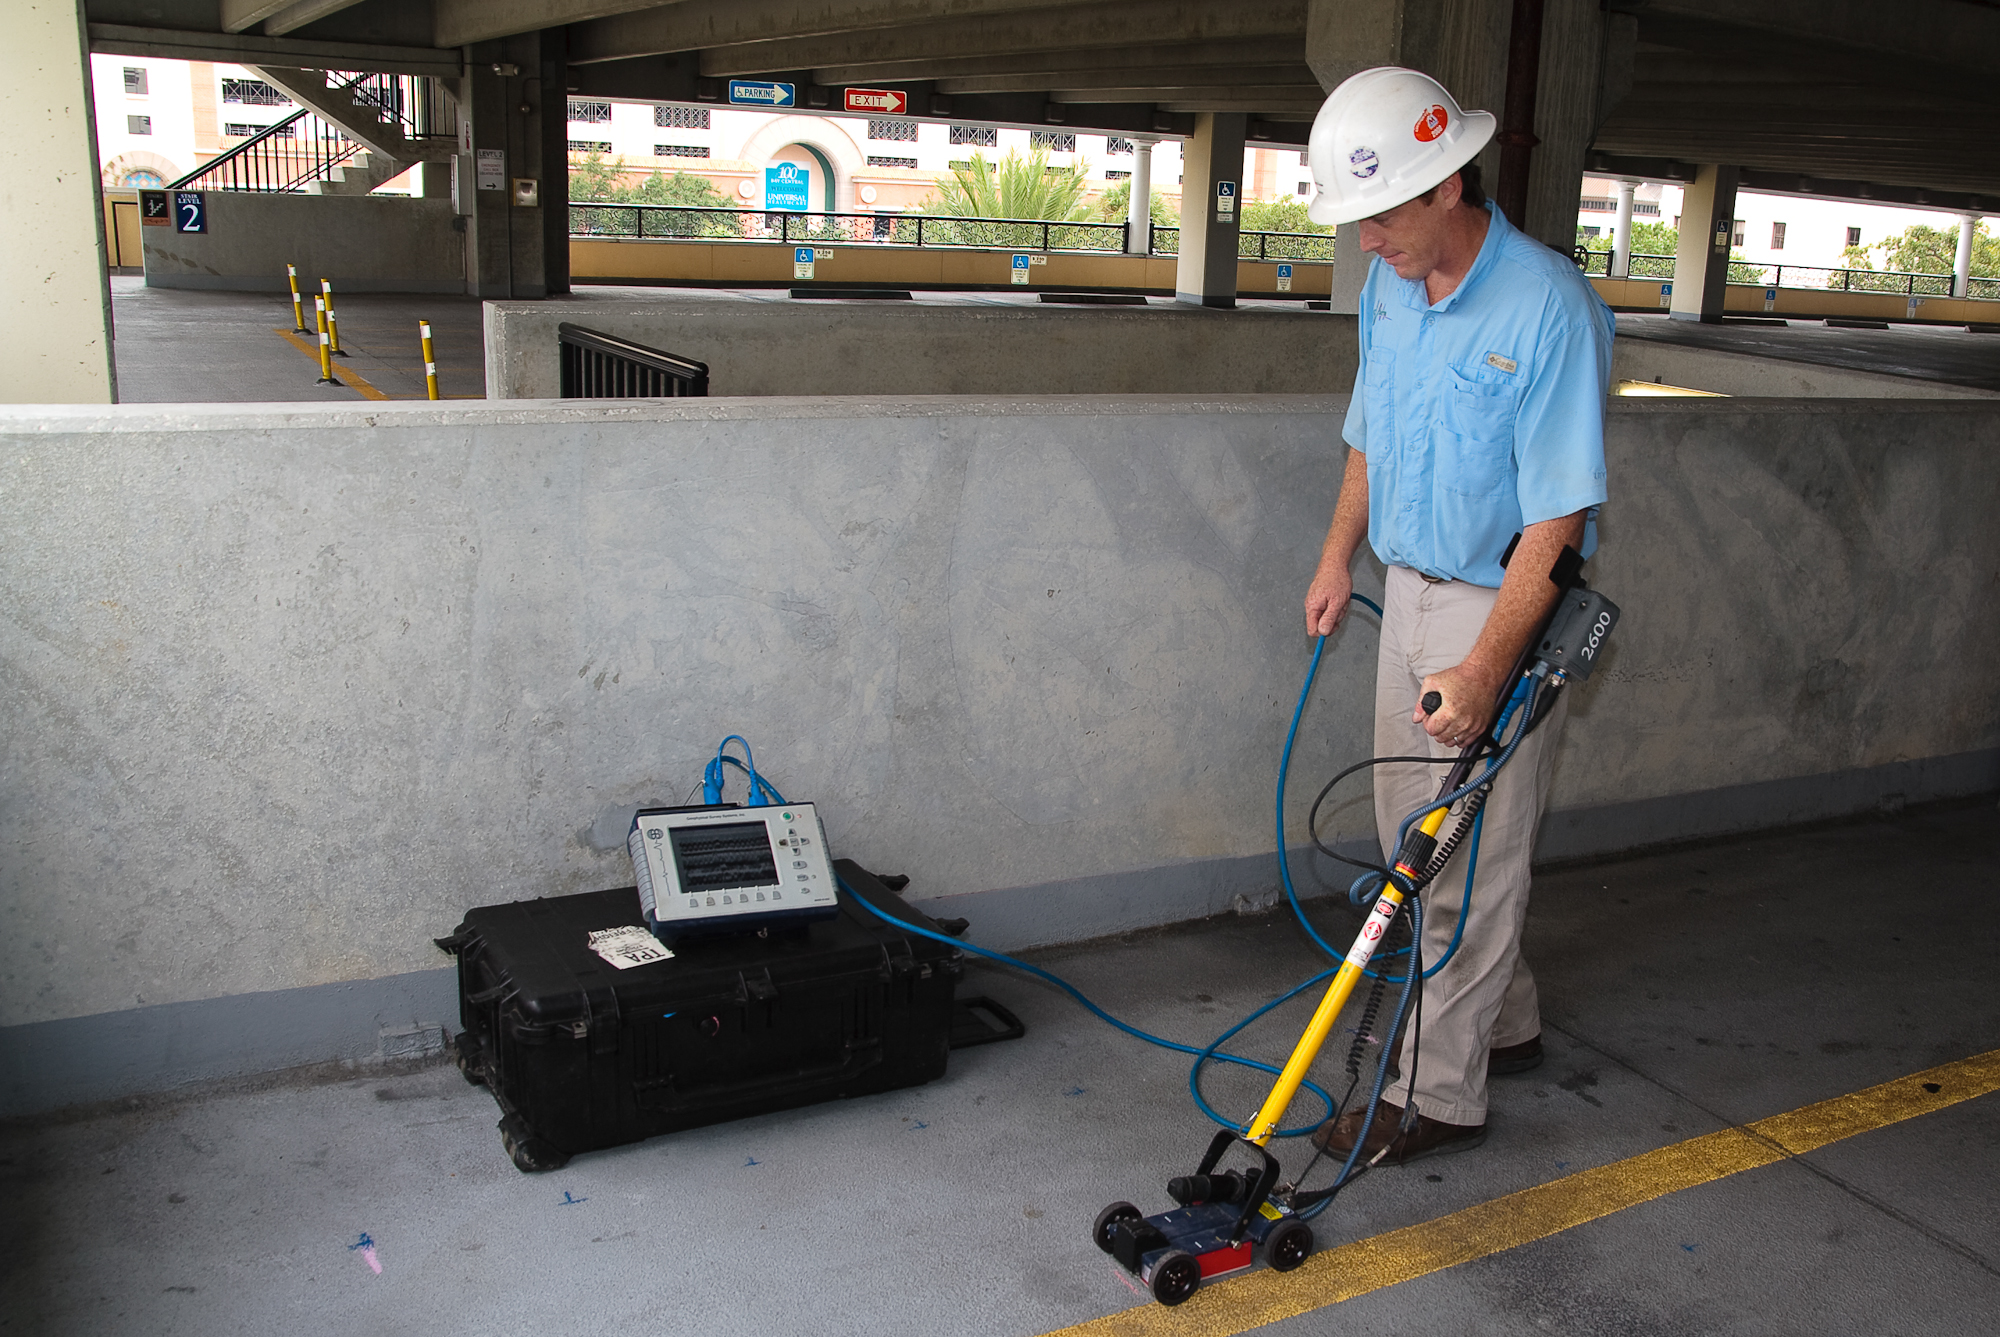 Collection of GPR data for Rebar Mapping